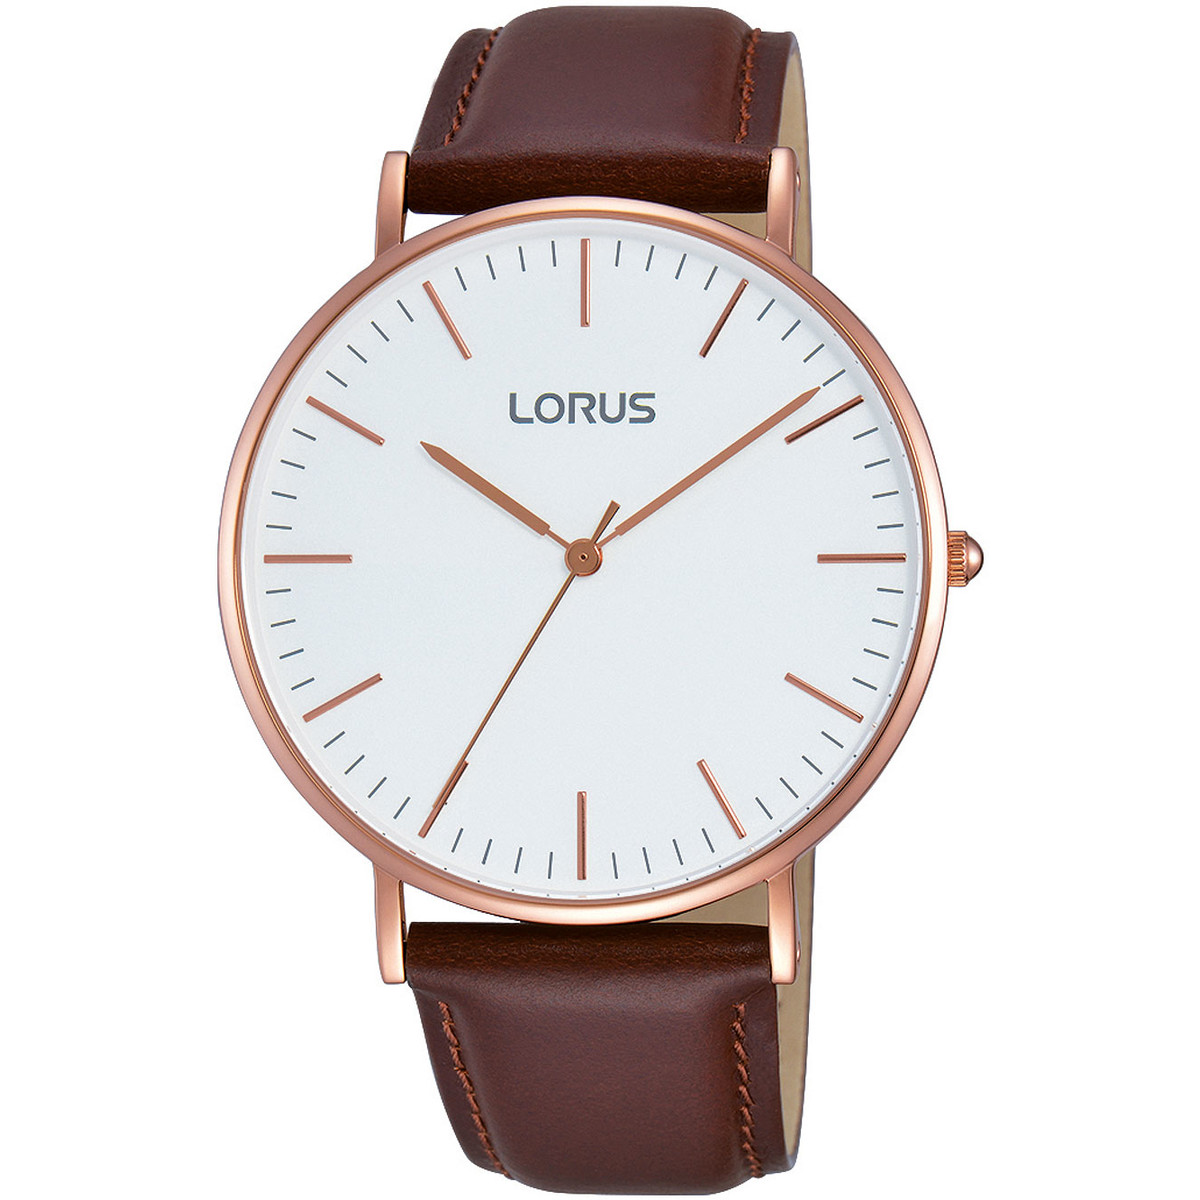 Ceas barbatesc Lorus by Seiko Fashion RH880BX9 de mana original